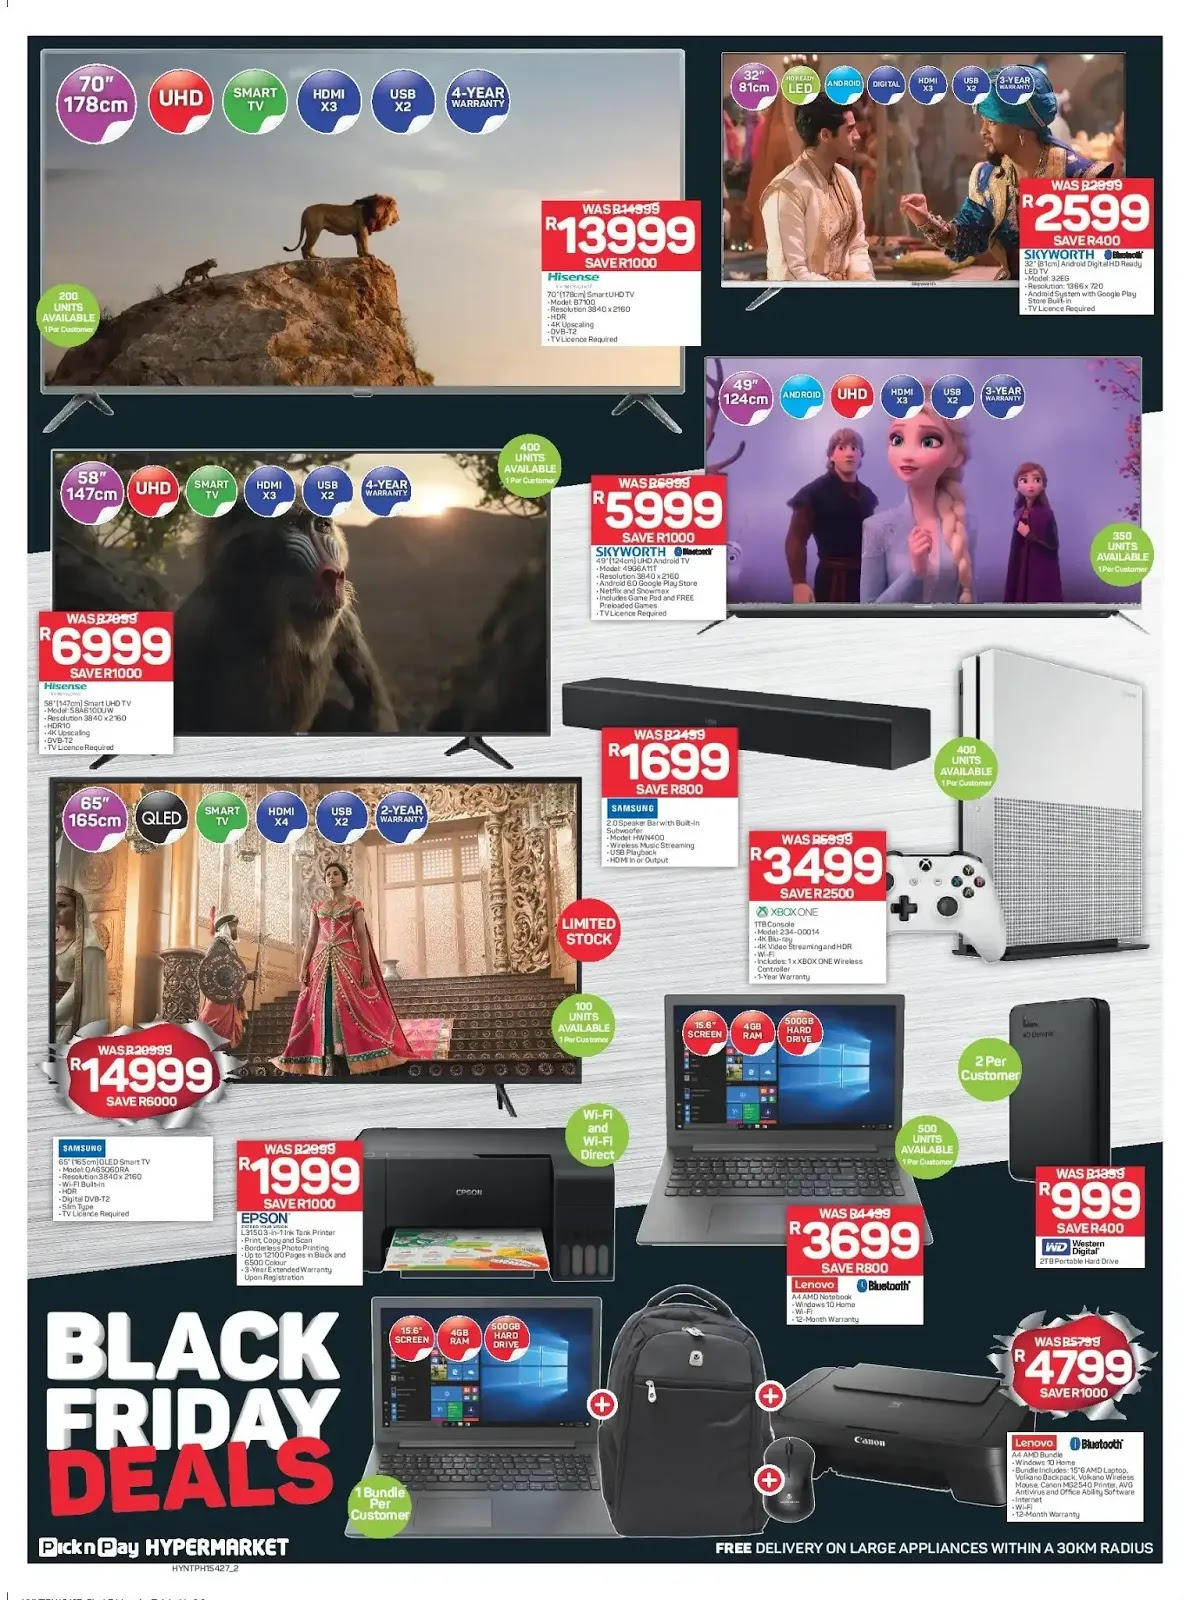 Pick n Pay Hypermarkets Black Friday deals - Page 2